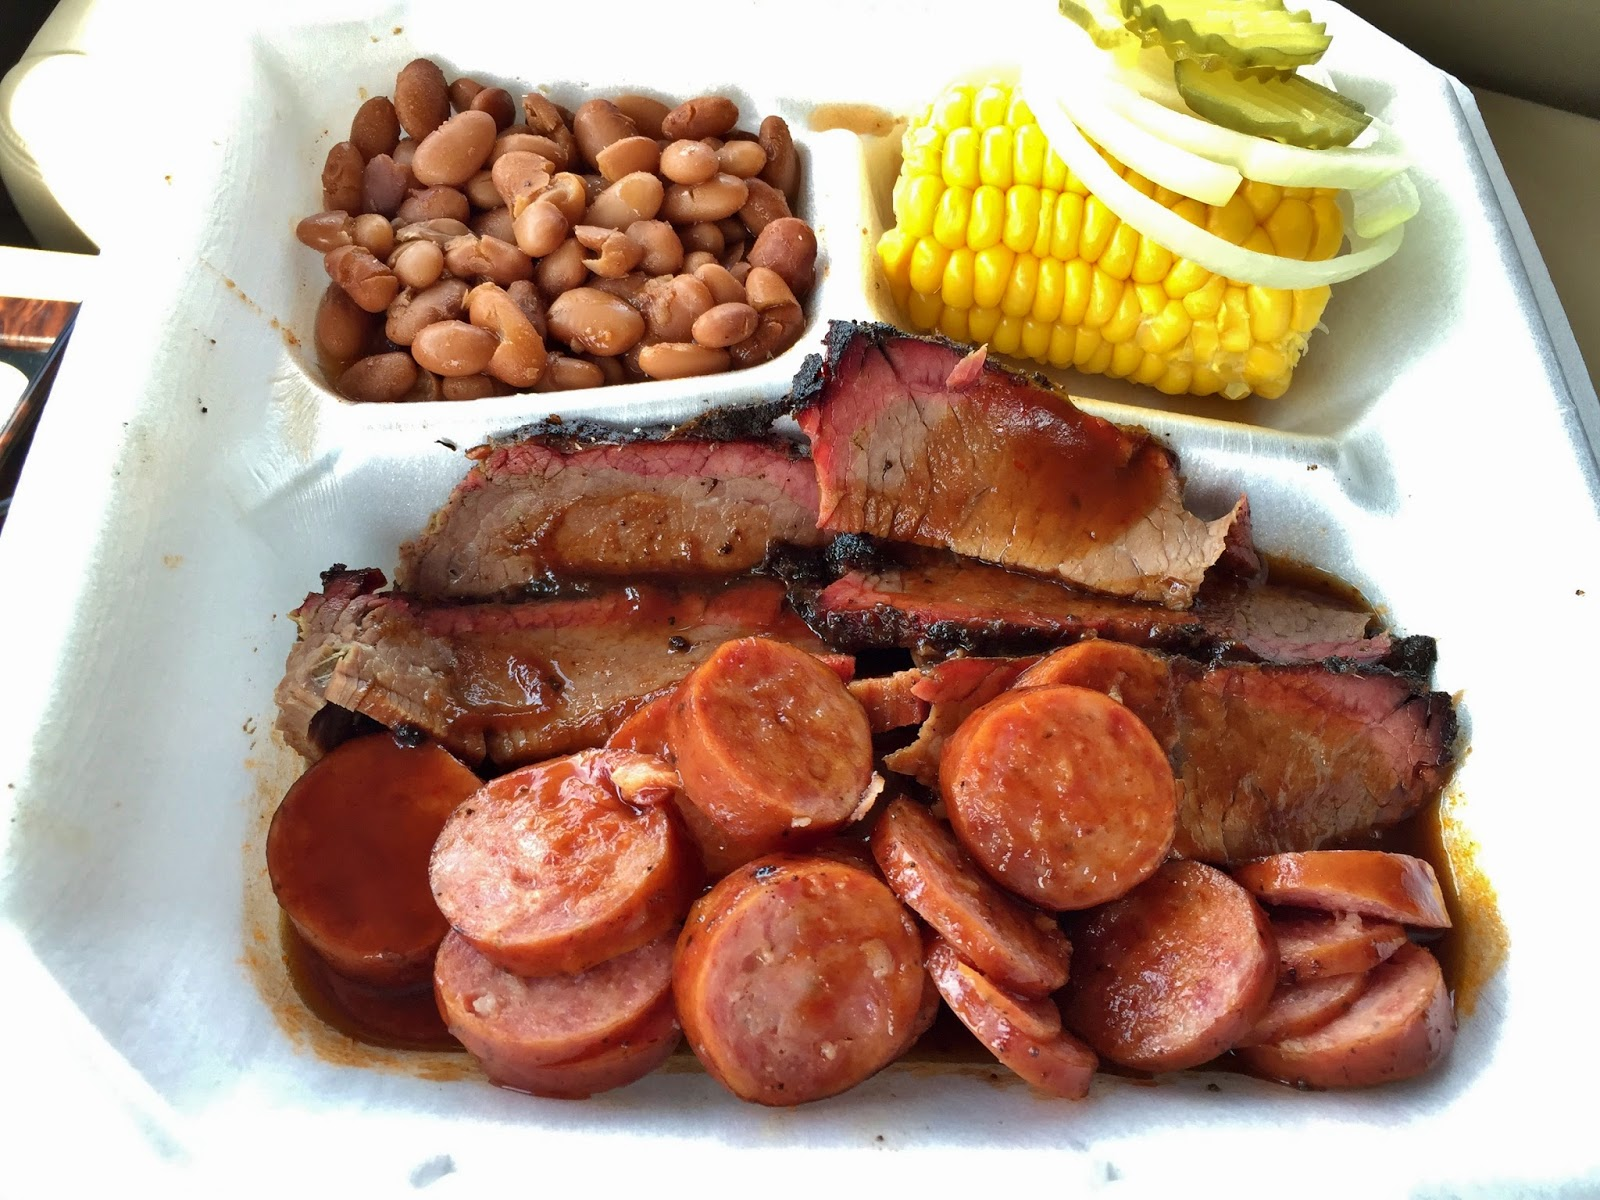 The sausage and brisket at Kirby's in Mexia